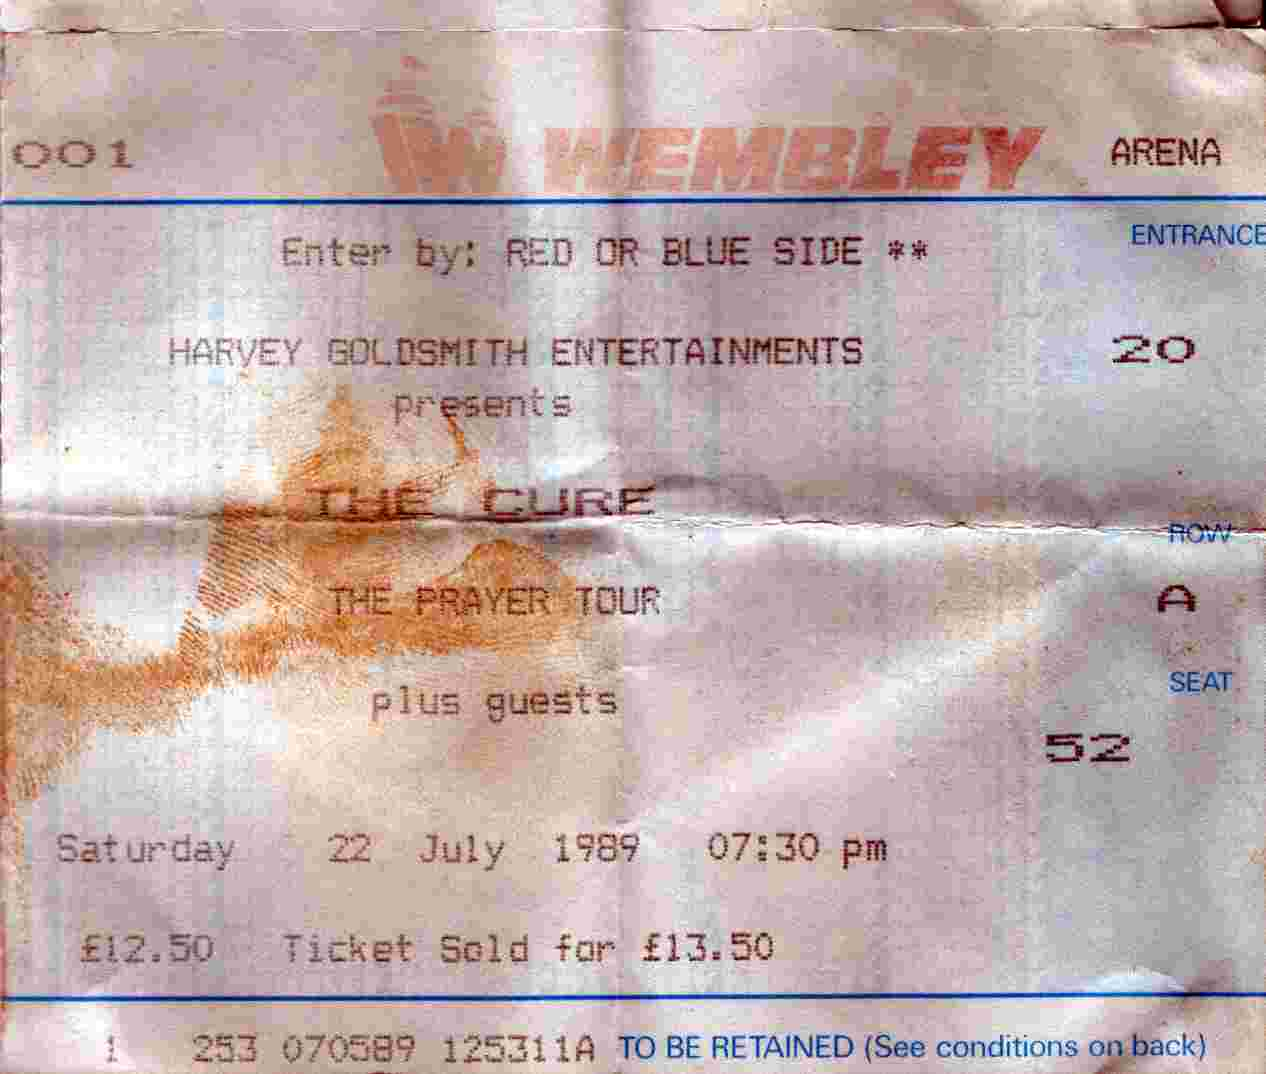 22 July 1989; The Cure + Shelleyan Orphan - Wembley Arena, London, England, UK